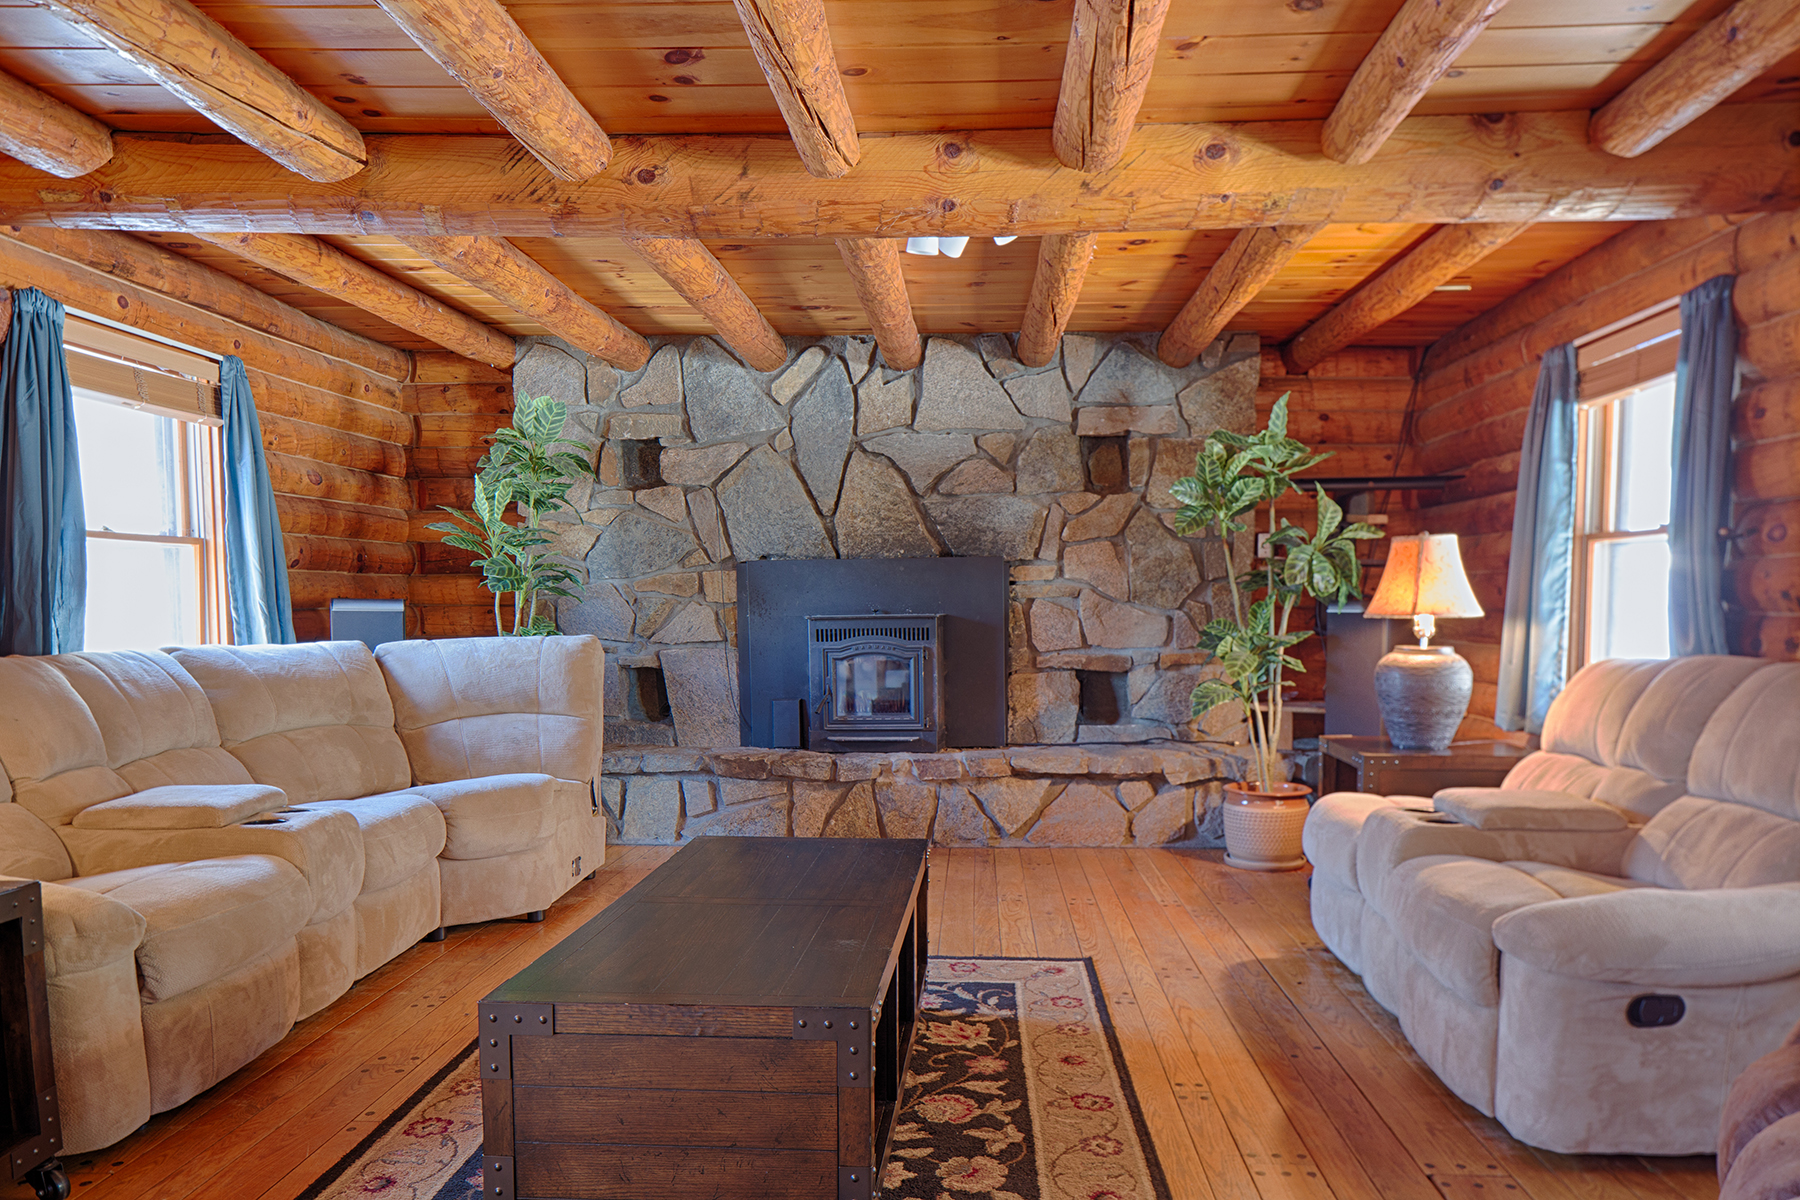 Single Family Home for Sale at Adirondack Lodge and Wellness Retreat 2280 State Route 28 Johnsburg, New York 12886 United States